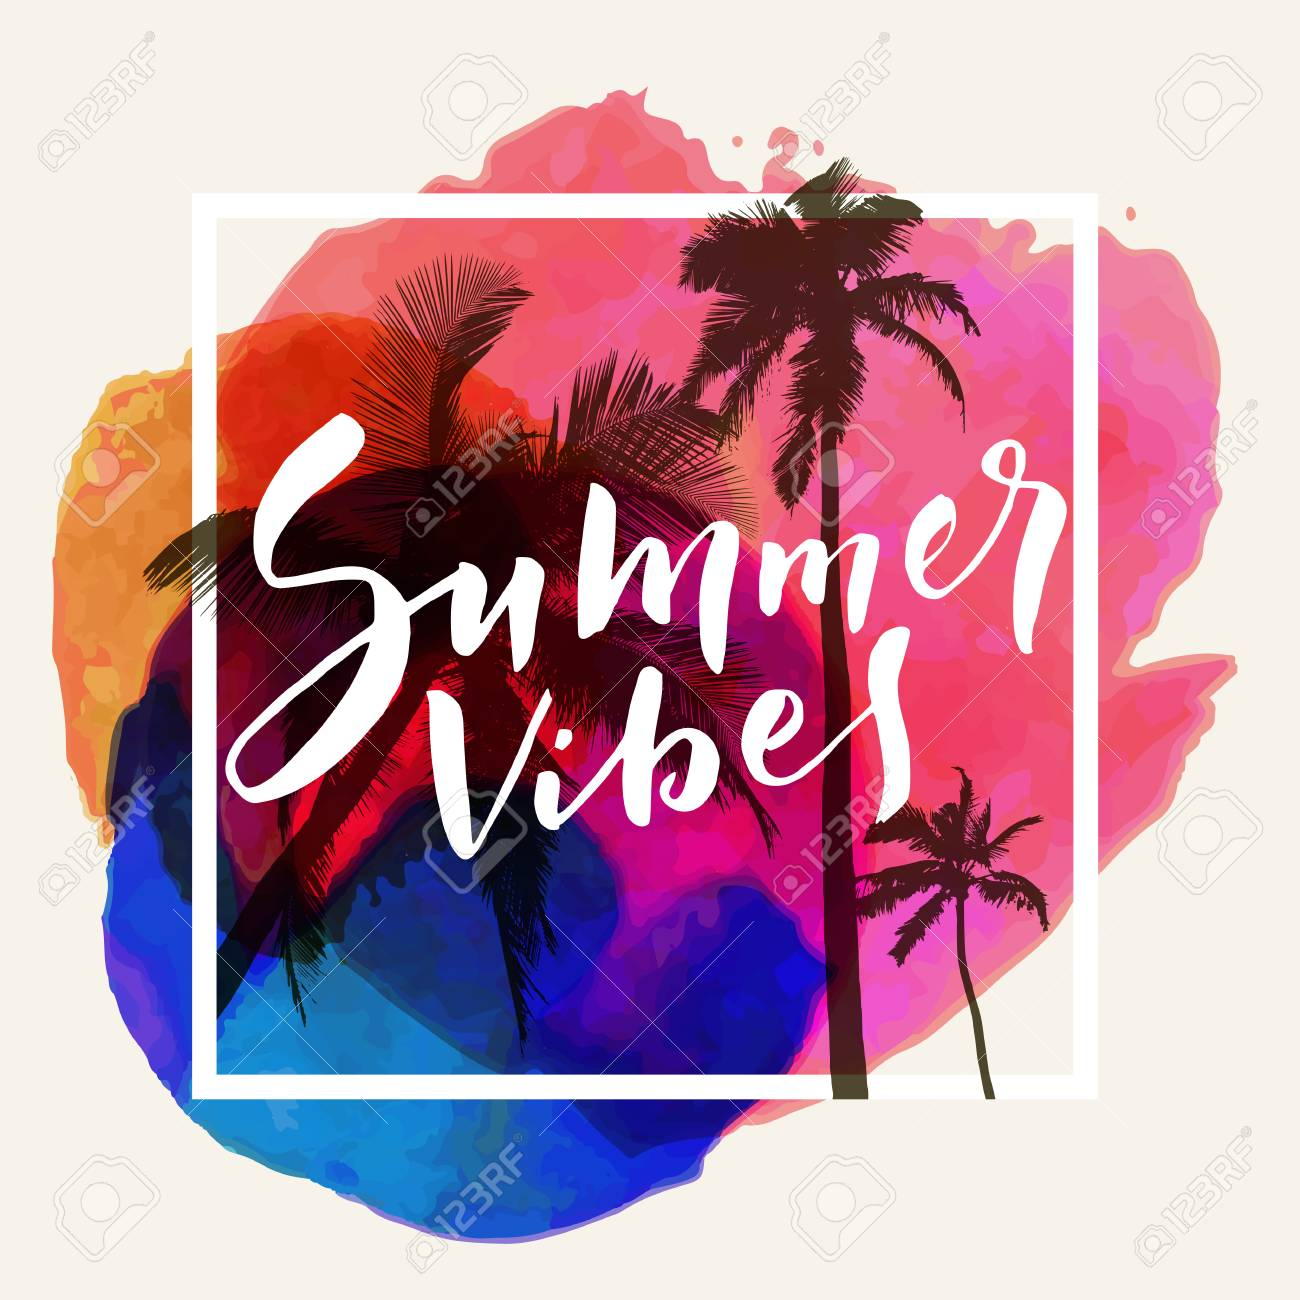 Summer Vibes Calligraphic Inspirational Quote Poster On Tropical